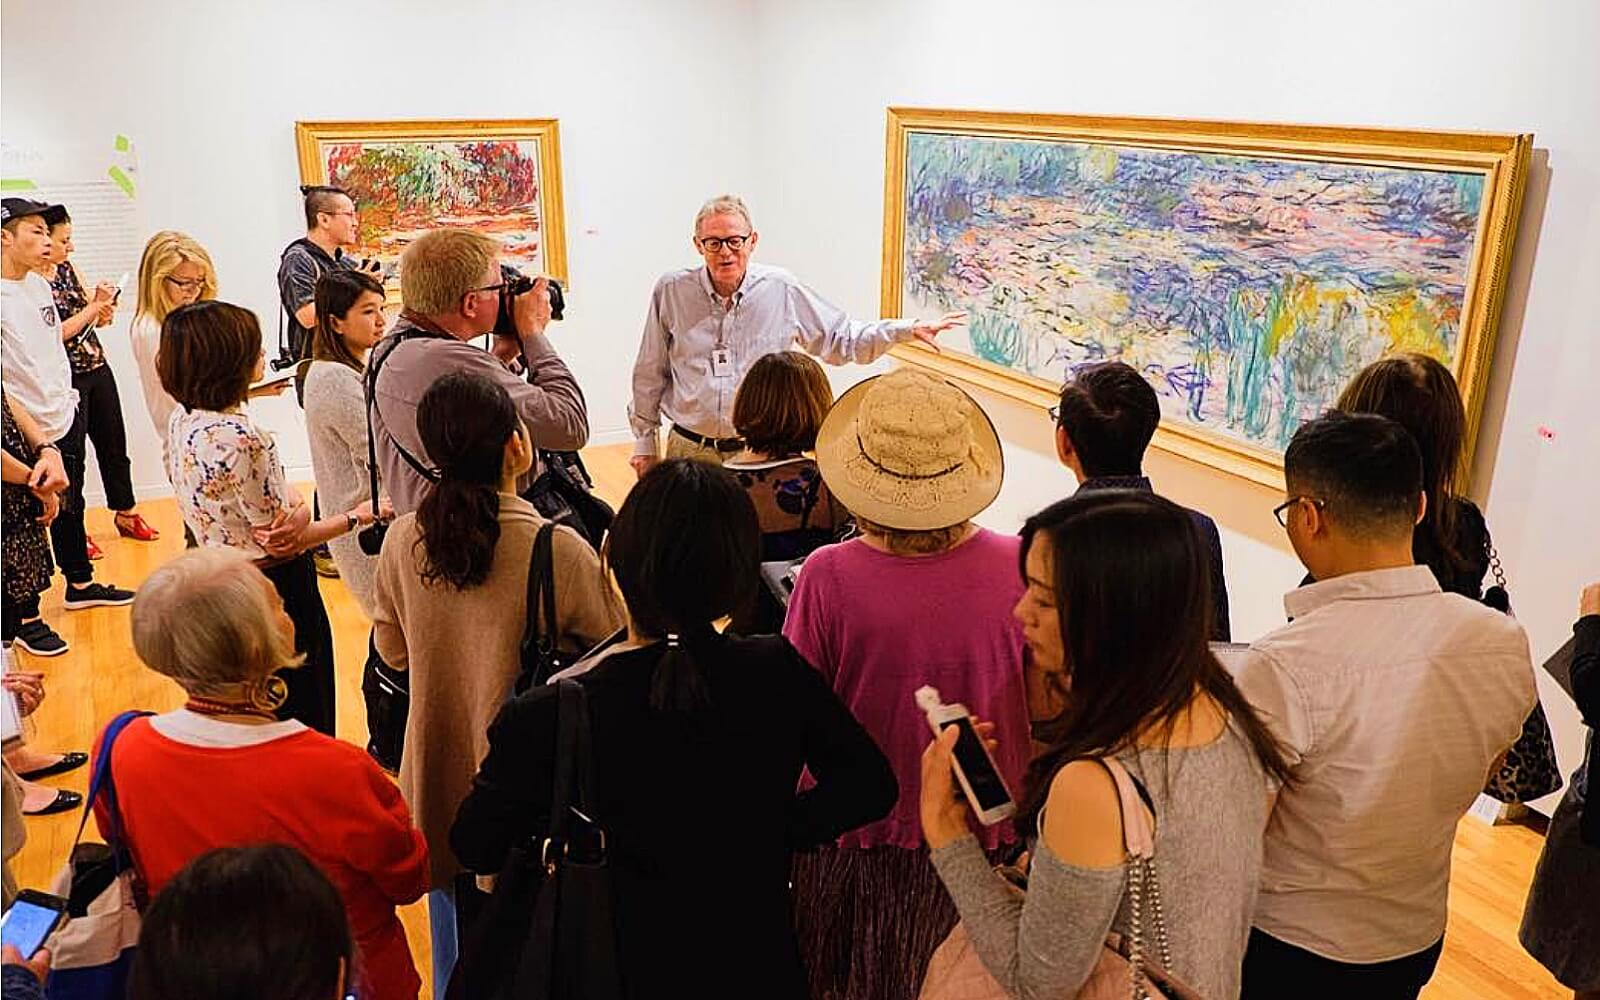 A guided tour at the Vancouver Art Gallery